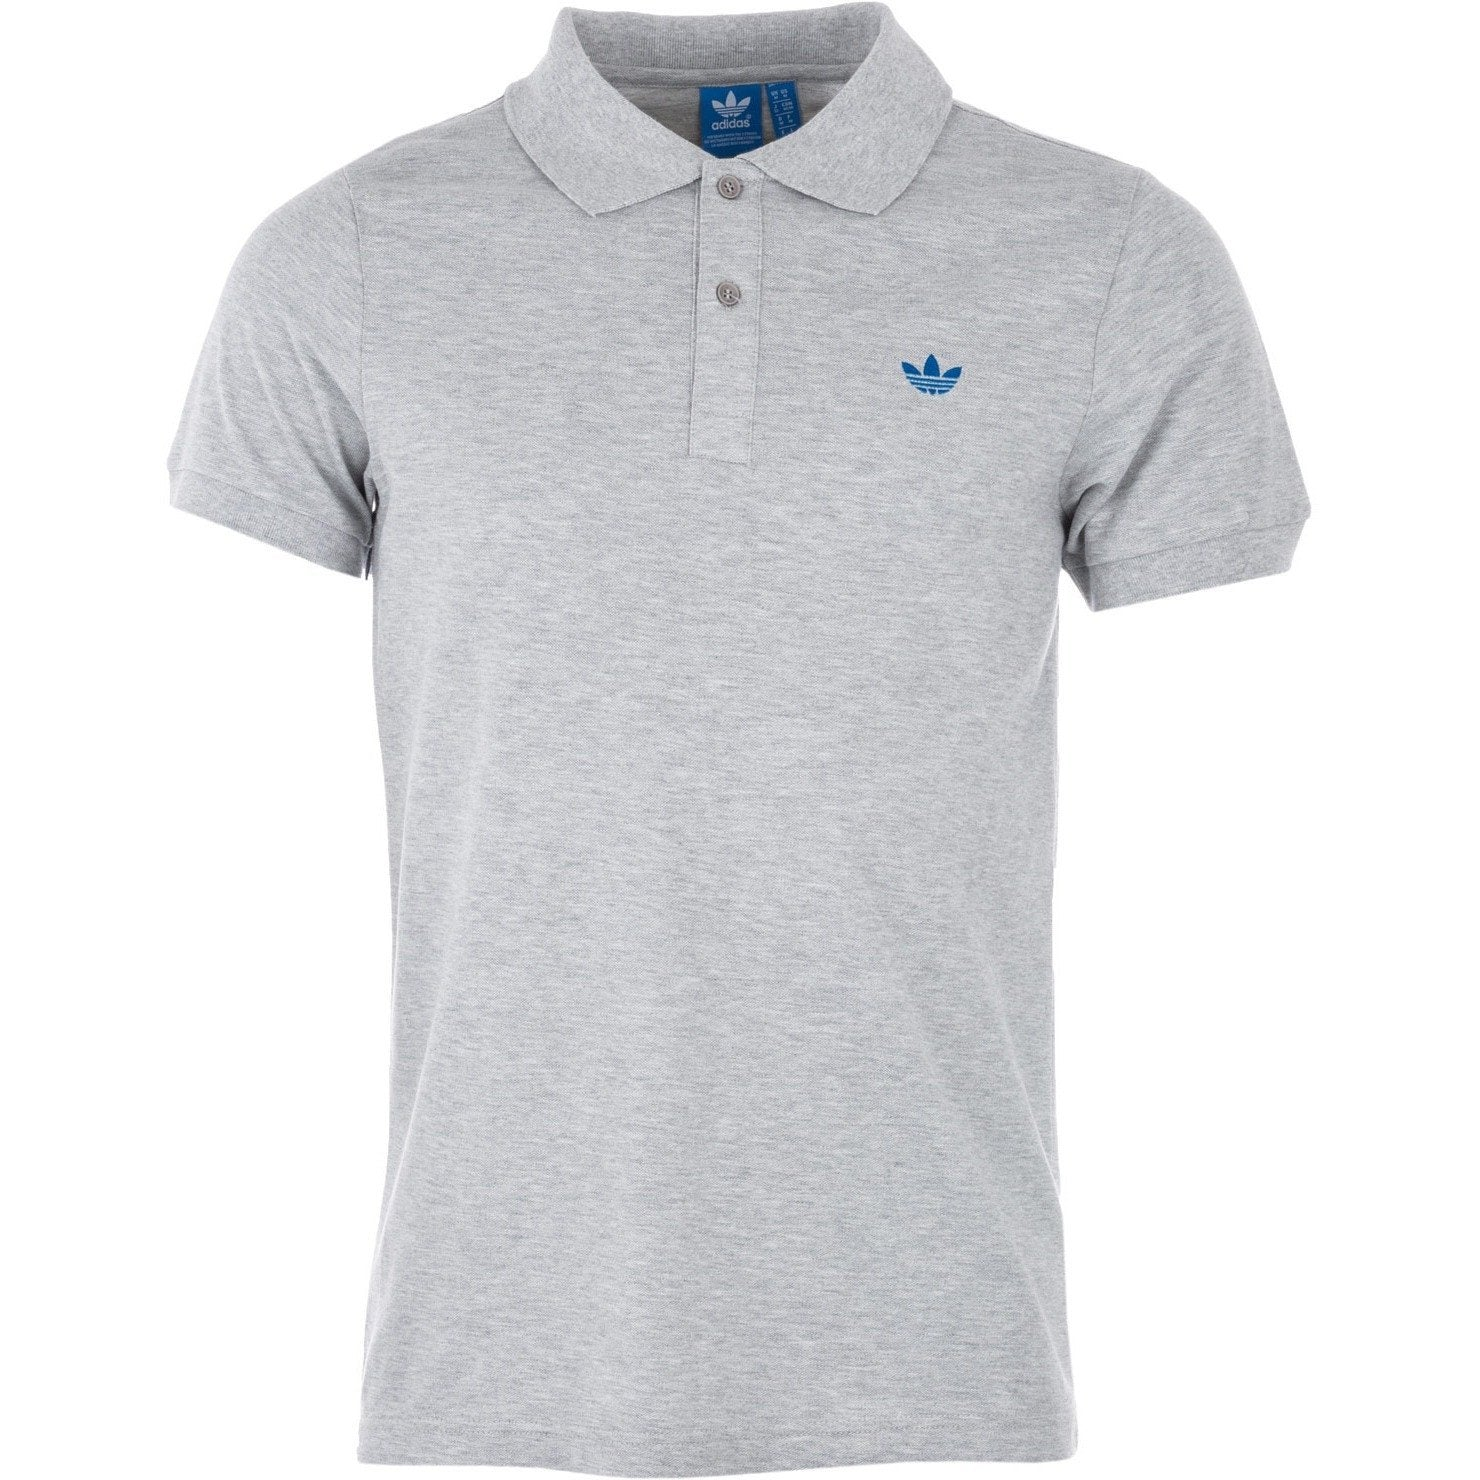 Adidas Polo Shirts - Grey